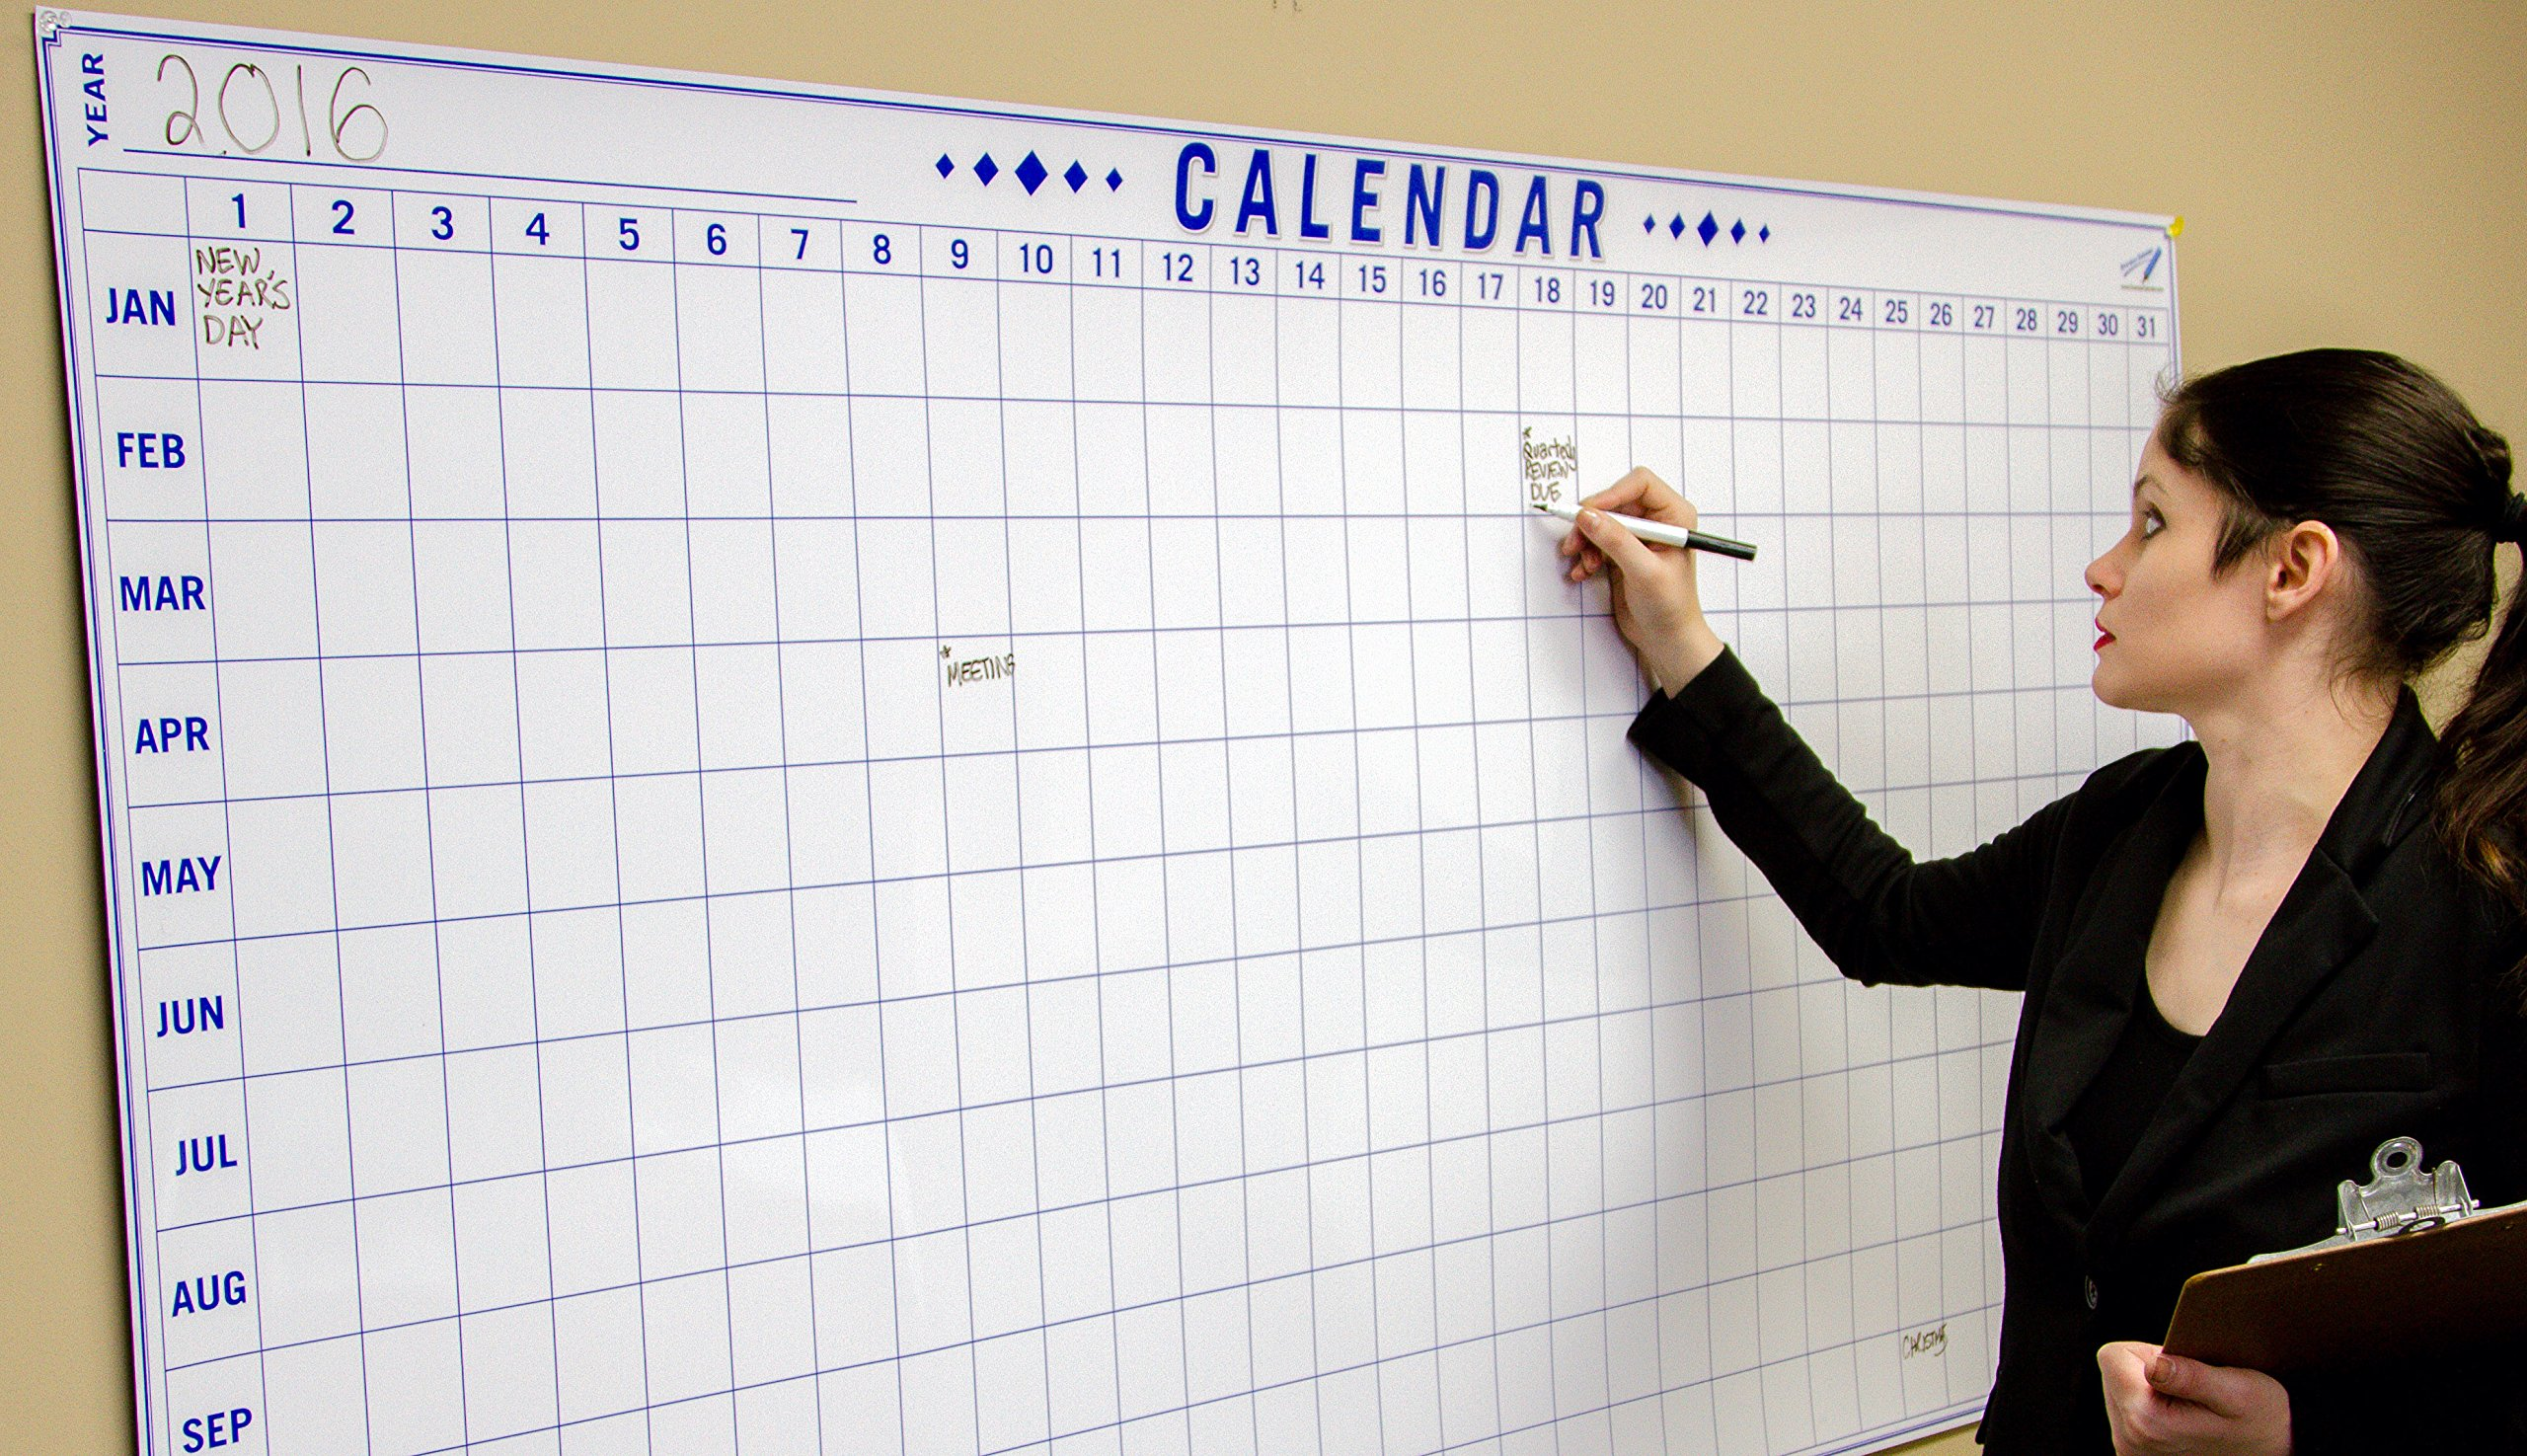 Dry Erase Julian Date Calendar - 36 x 72 Large Dry Erase Wall Calendar - Large Wall Calendar - Reusable Annual Calendar - Wall Planner with Vertical Dates and Horizontal Months by Oversize Planner by ABI Digital Solutions (Image #6)